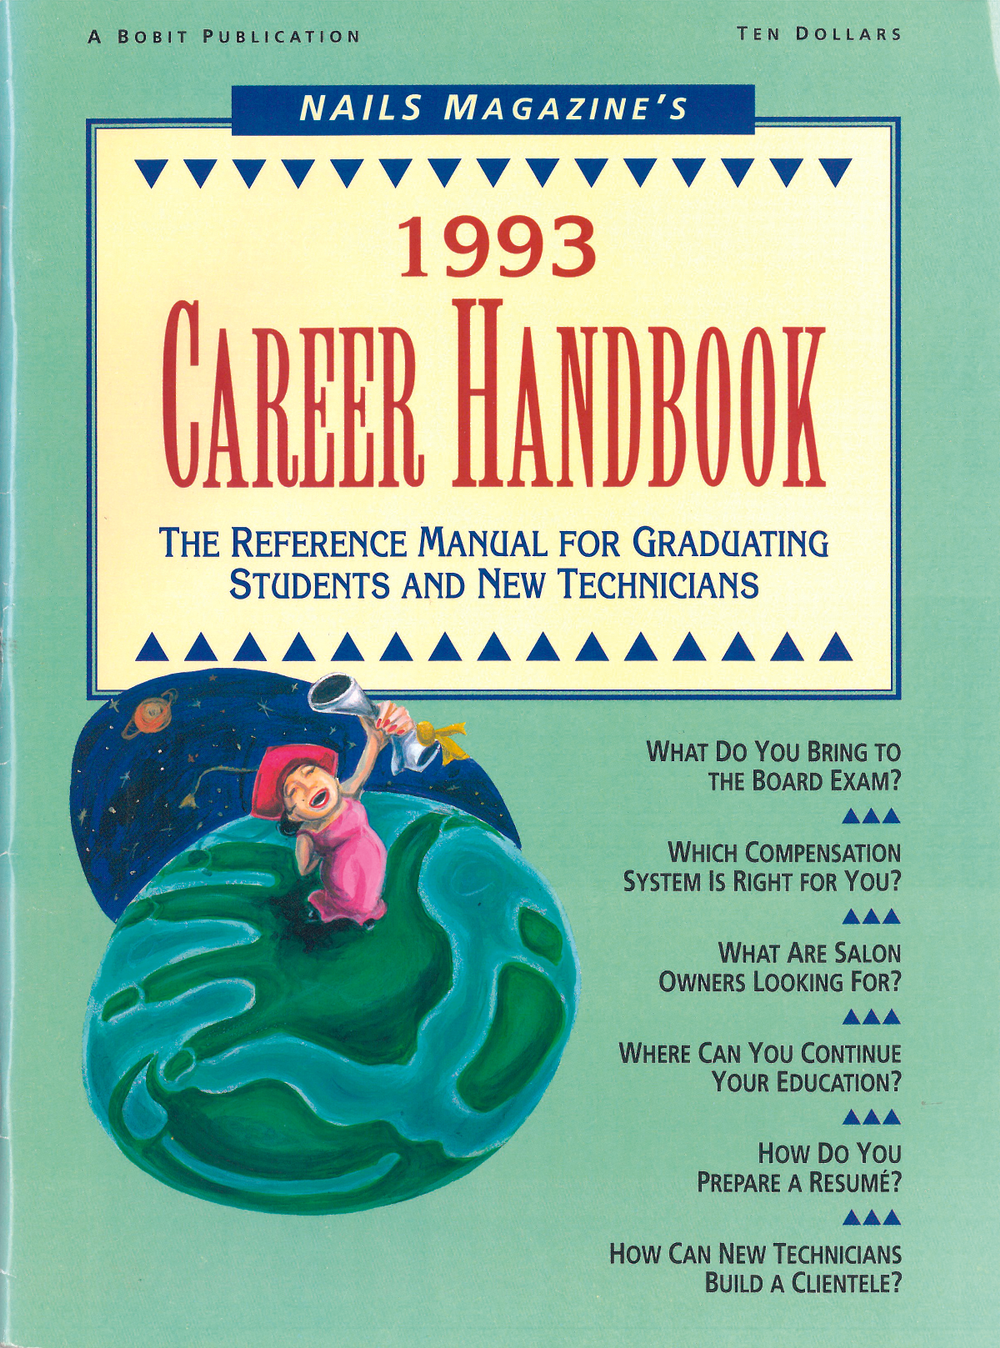 <p><strong>1992</strong>: NAILS launches the Career Handbook for nail care students and new techs.</p>